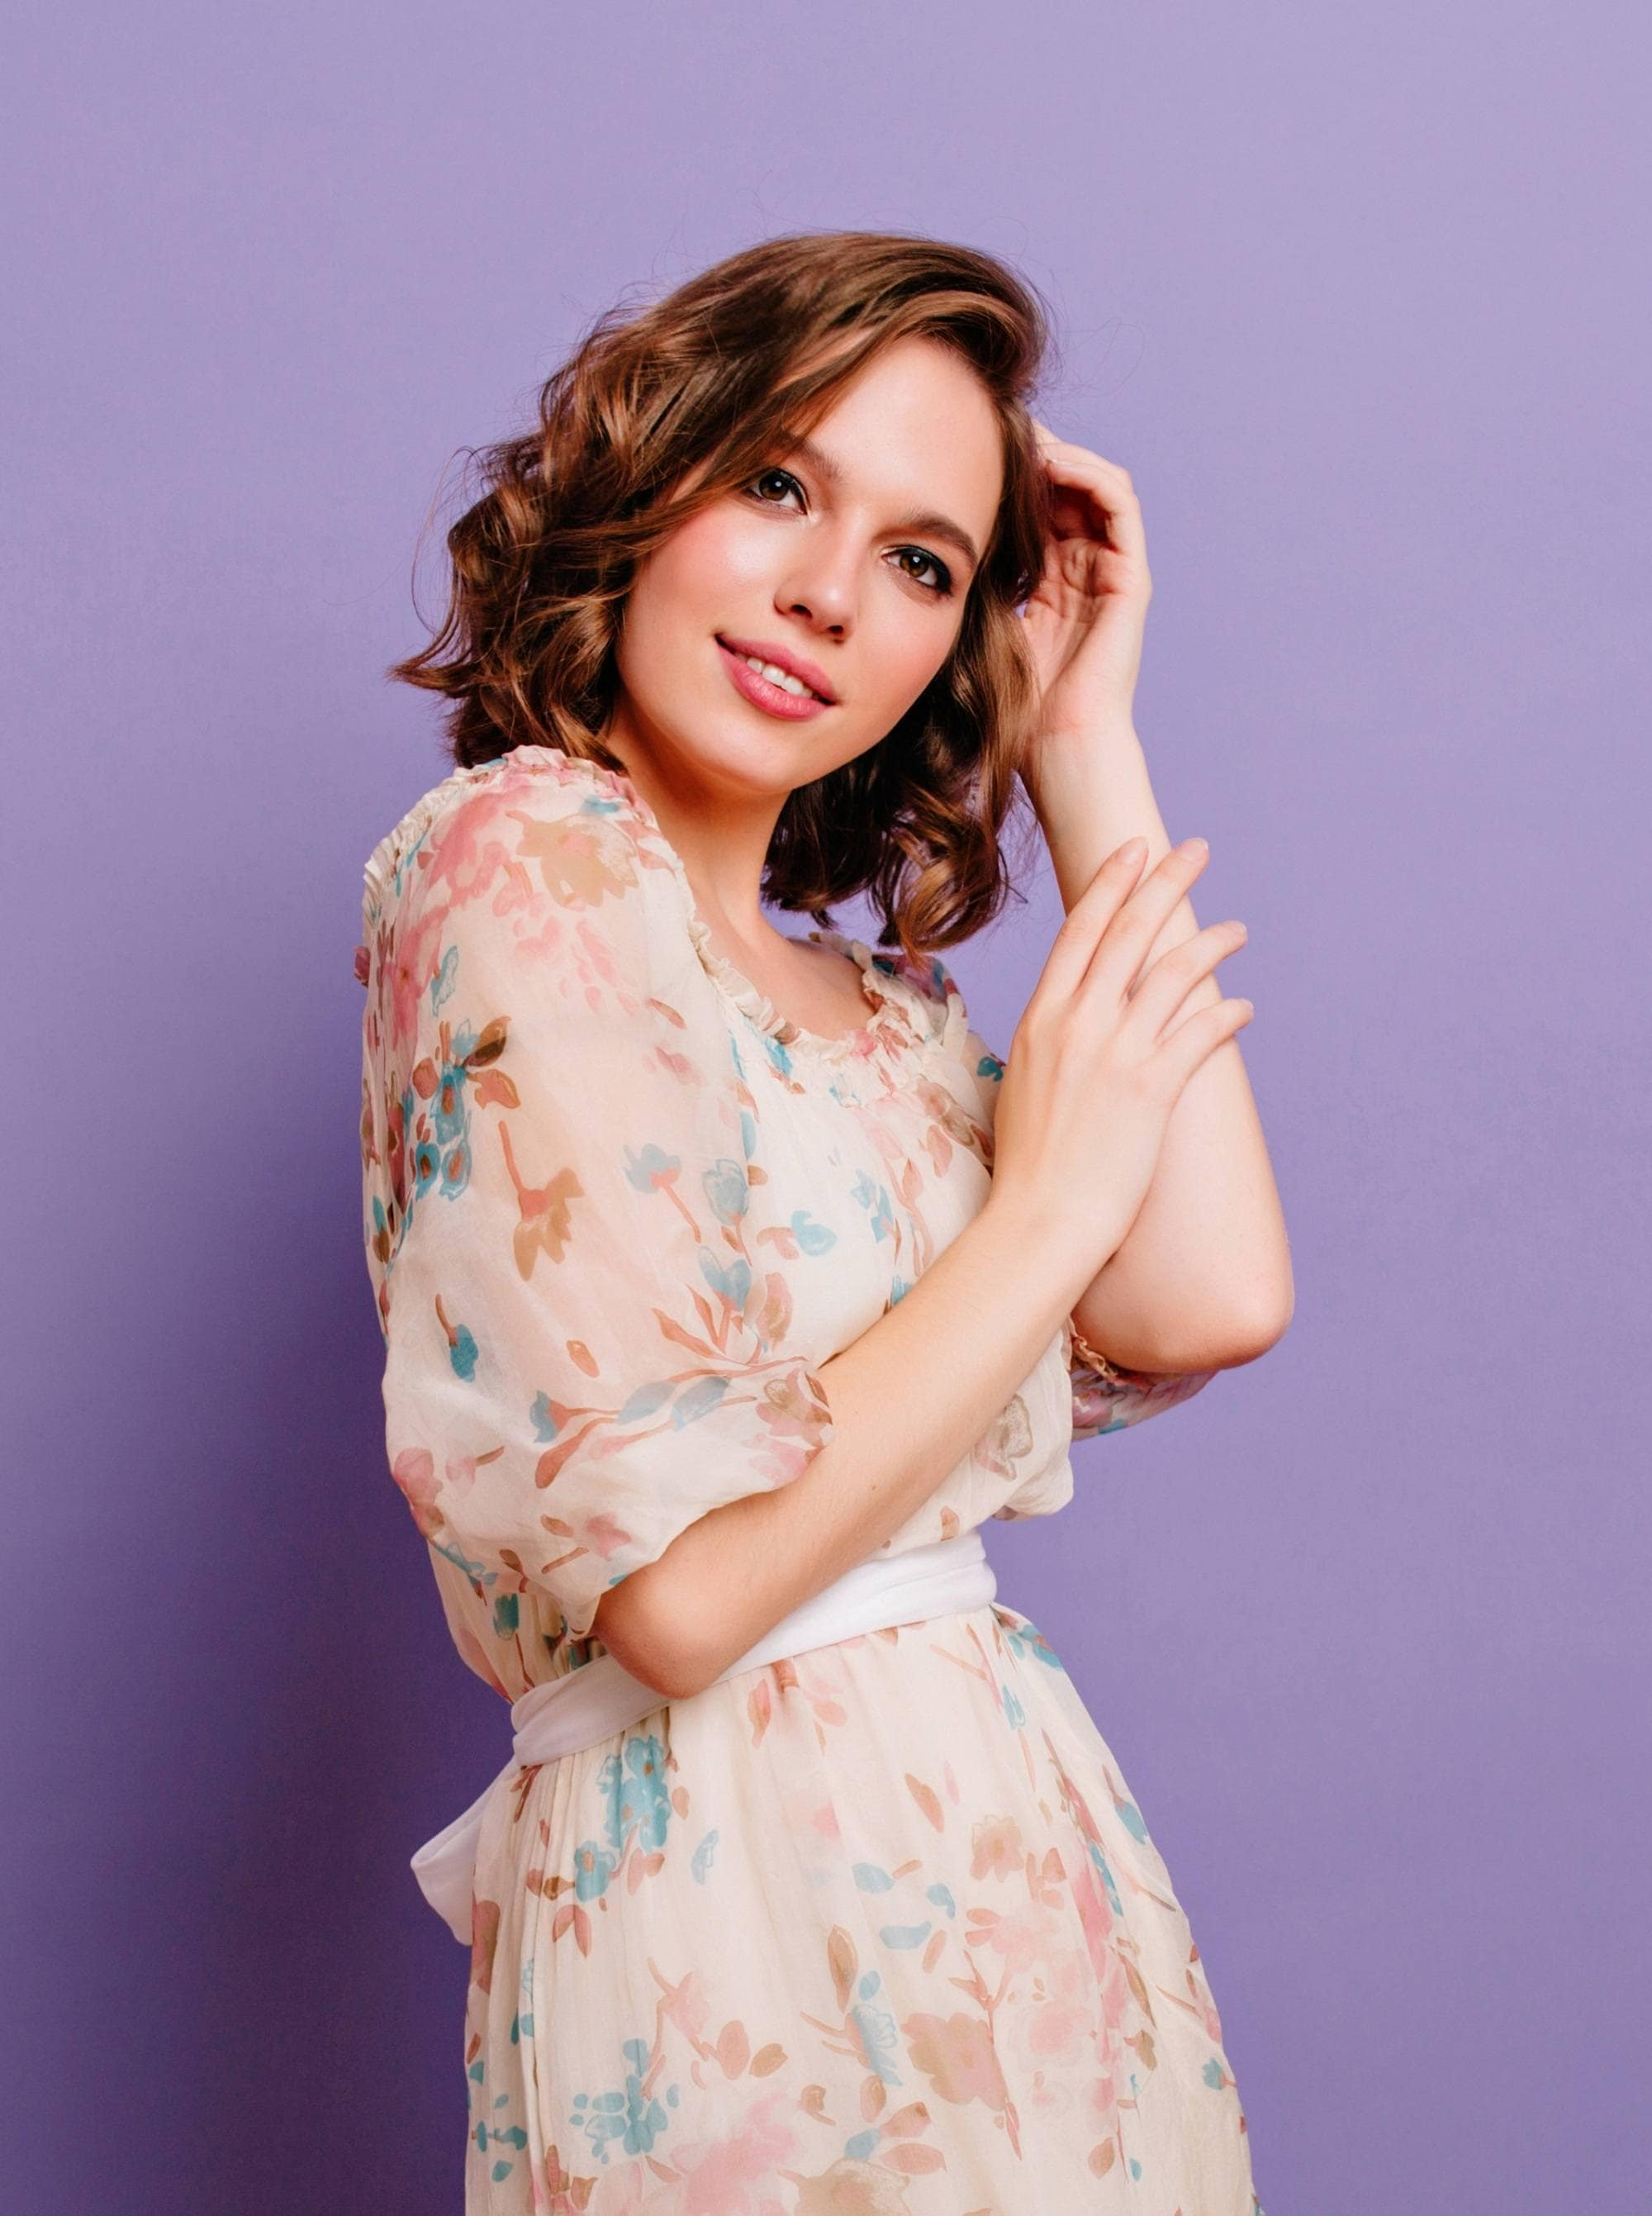 Short wavy hair: Woman with short hair and soft curls